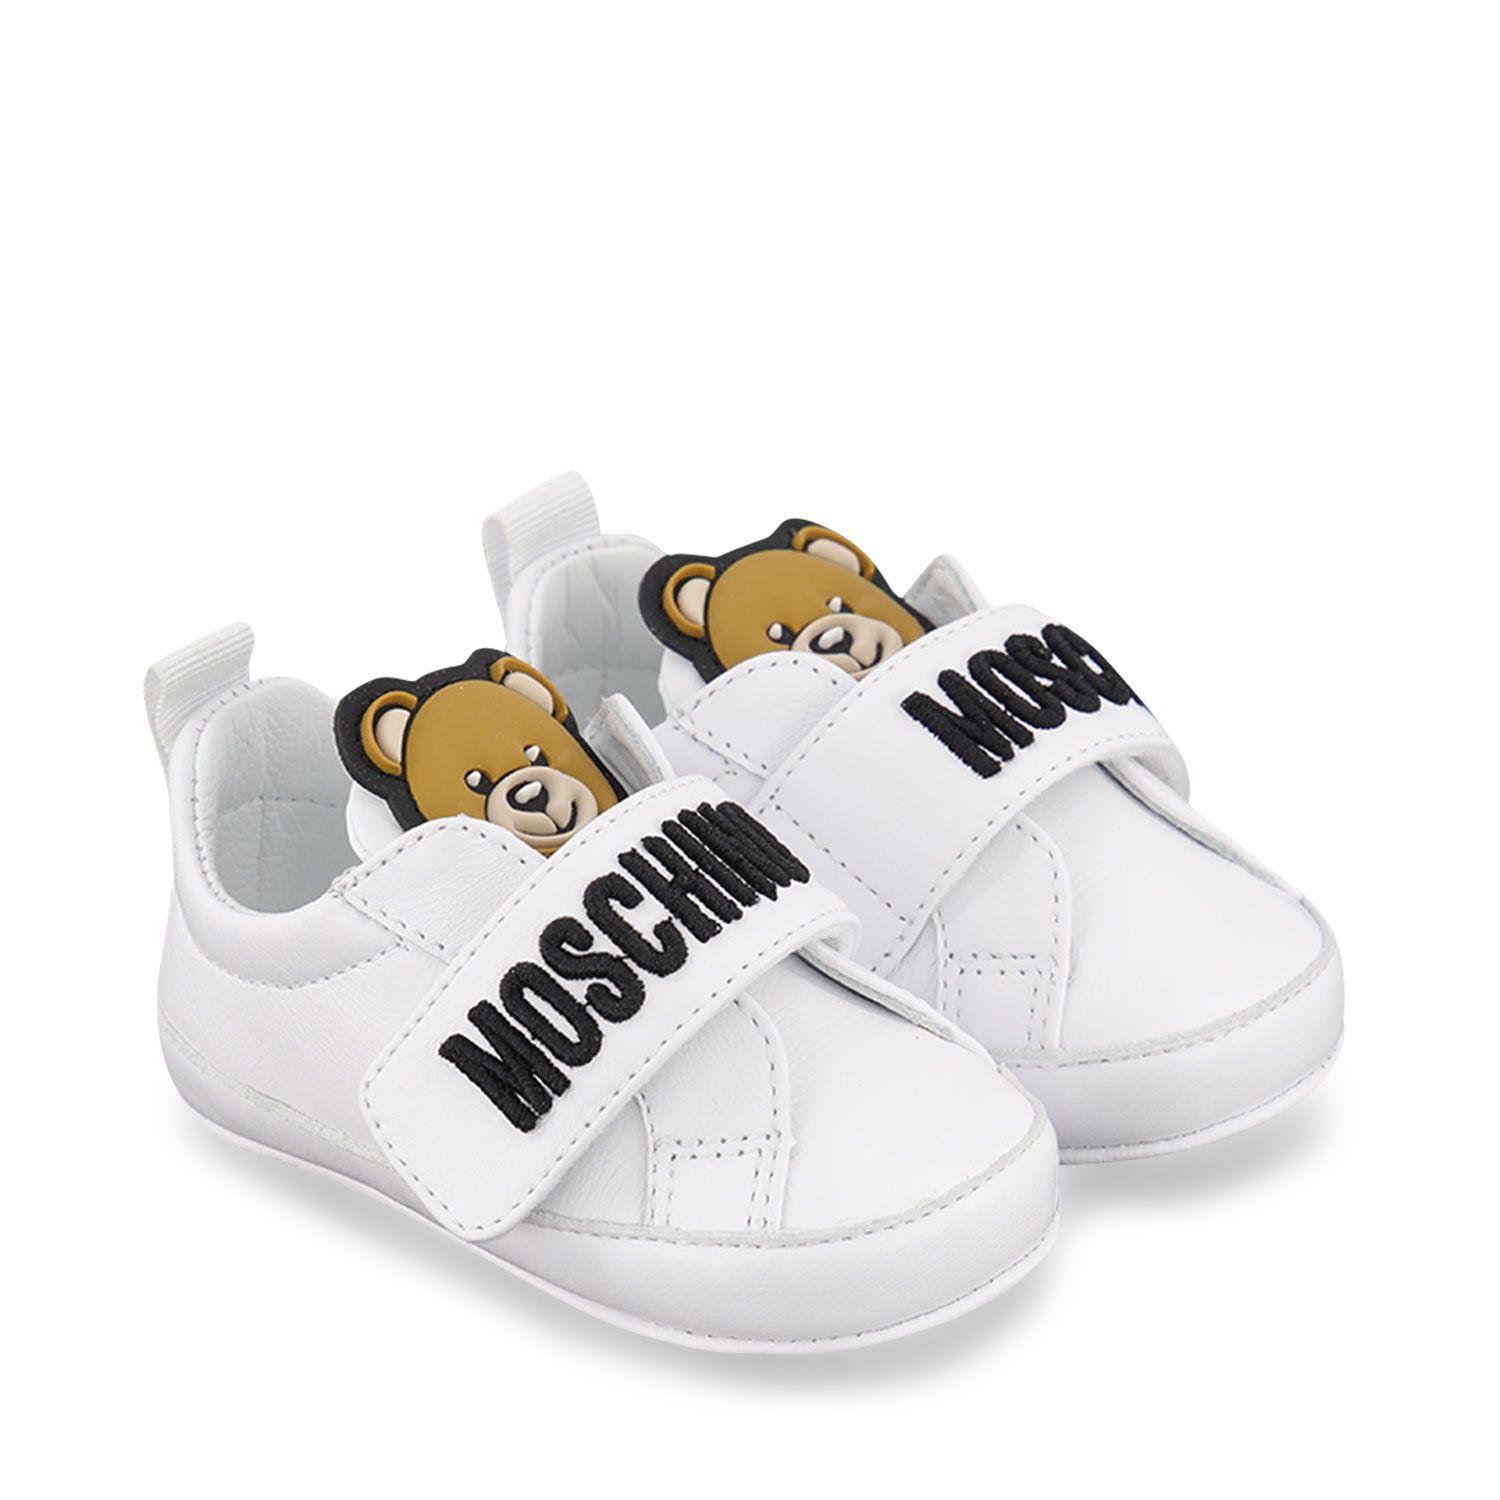 Picture of Moschino 67339 baby sneakers white